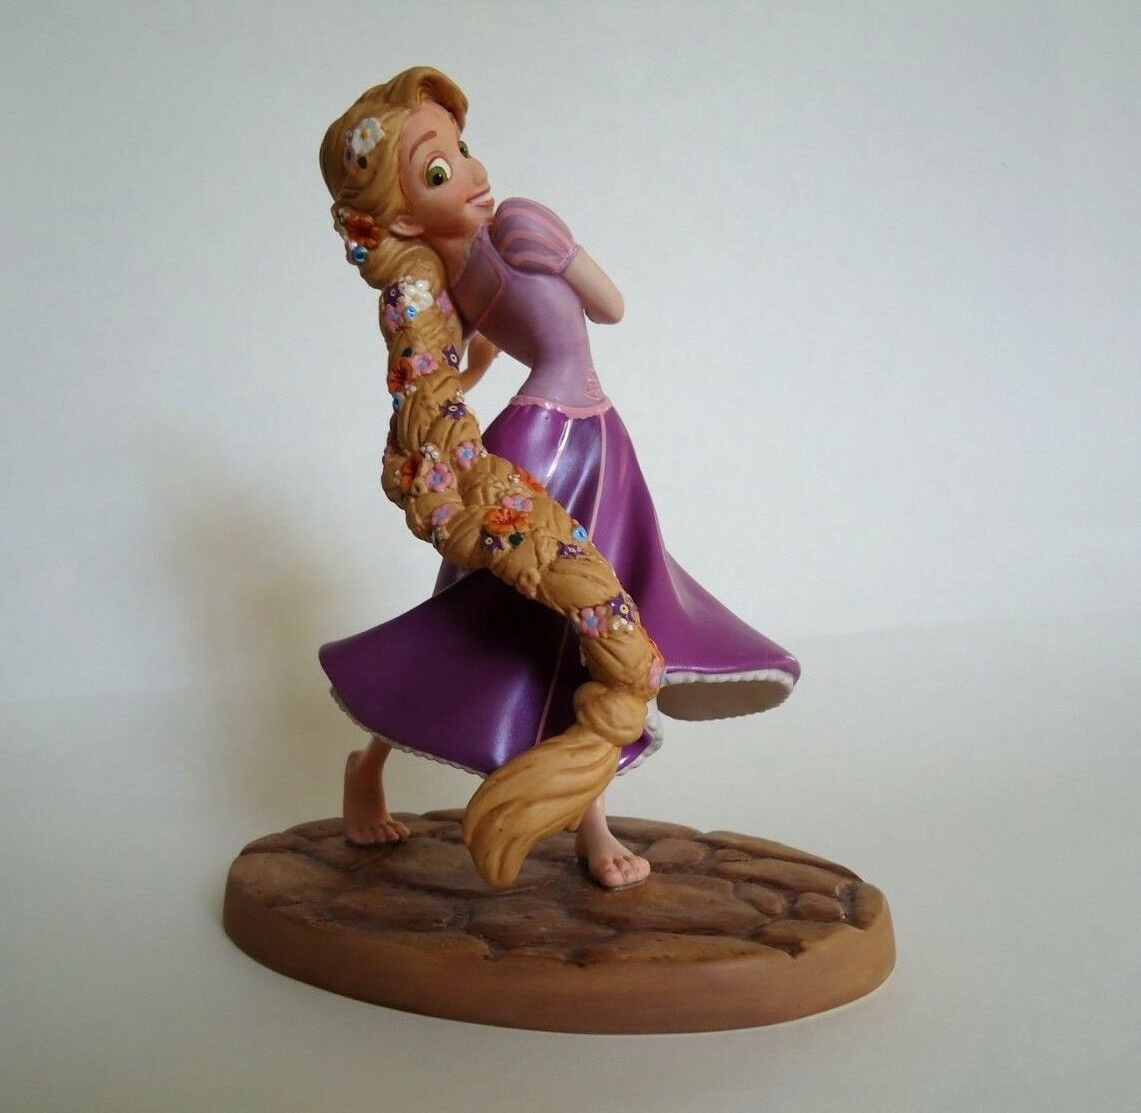 WDCC Braided Beauty from Tangled statue/figurine